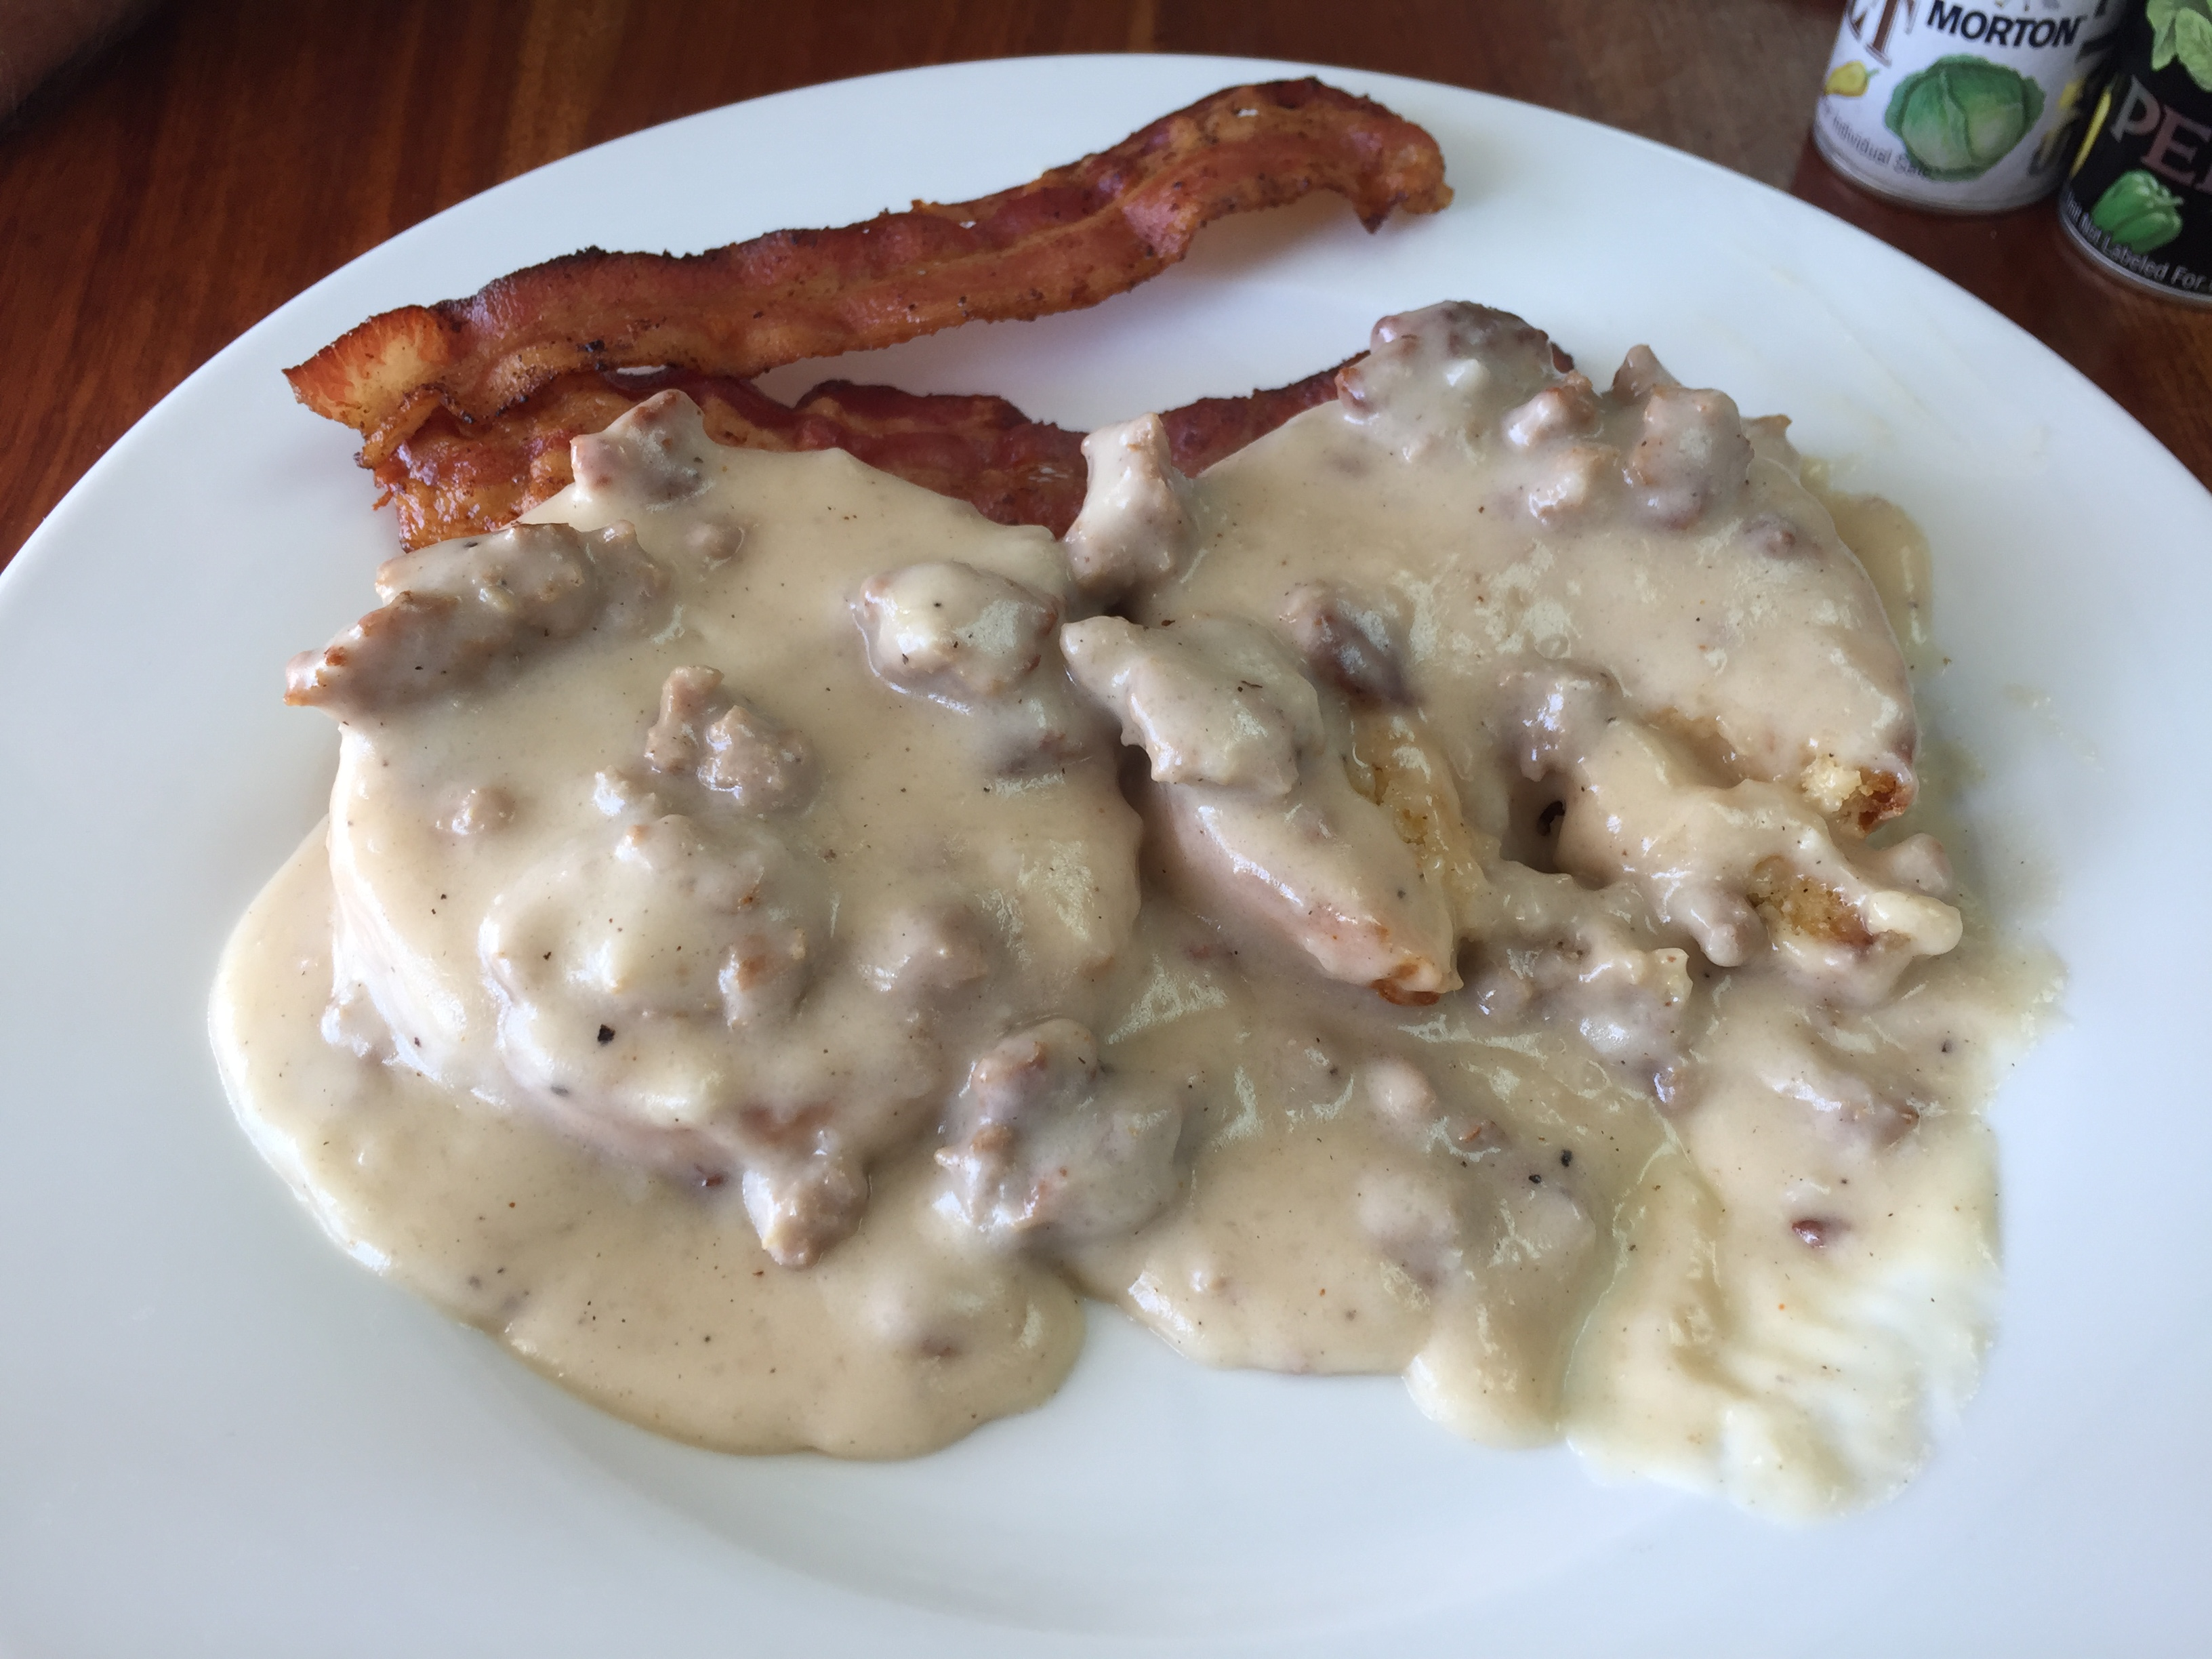 $7 Biscuits and Gravy with sausage